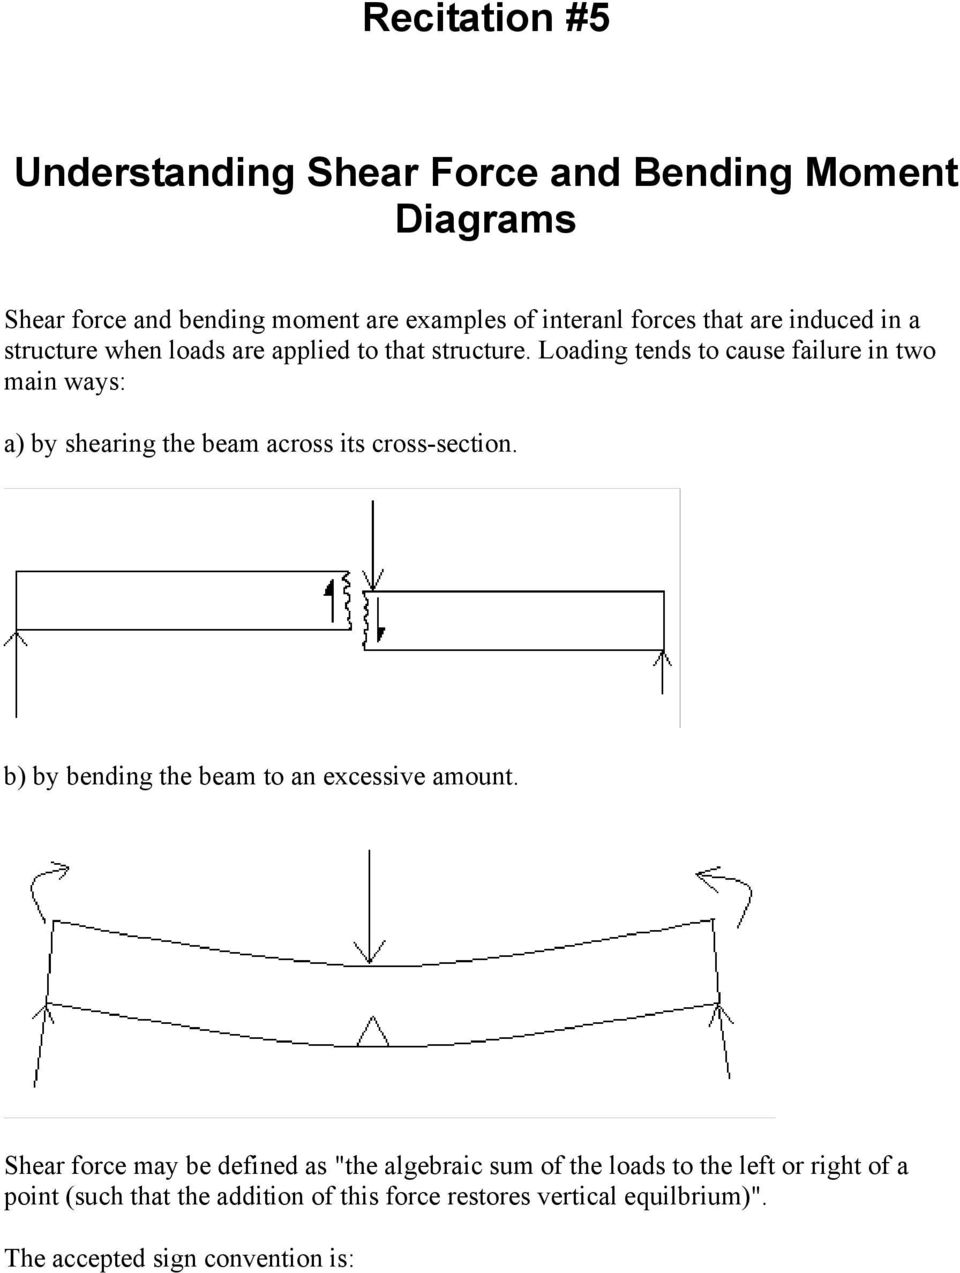 Recitation 5 Understanding Shear Force And Bending Moment Diagrams Transcribed Image Text Draw Diagram Loading Tends To Cause Failure In Two Main Ways A By Shearing The Beam